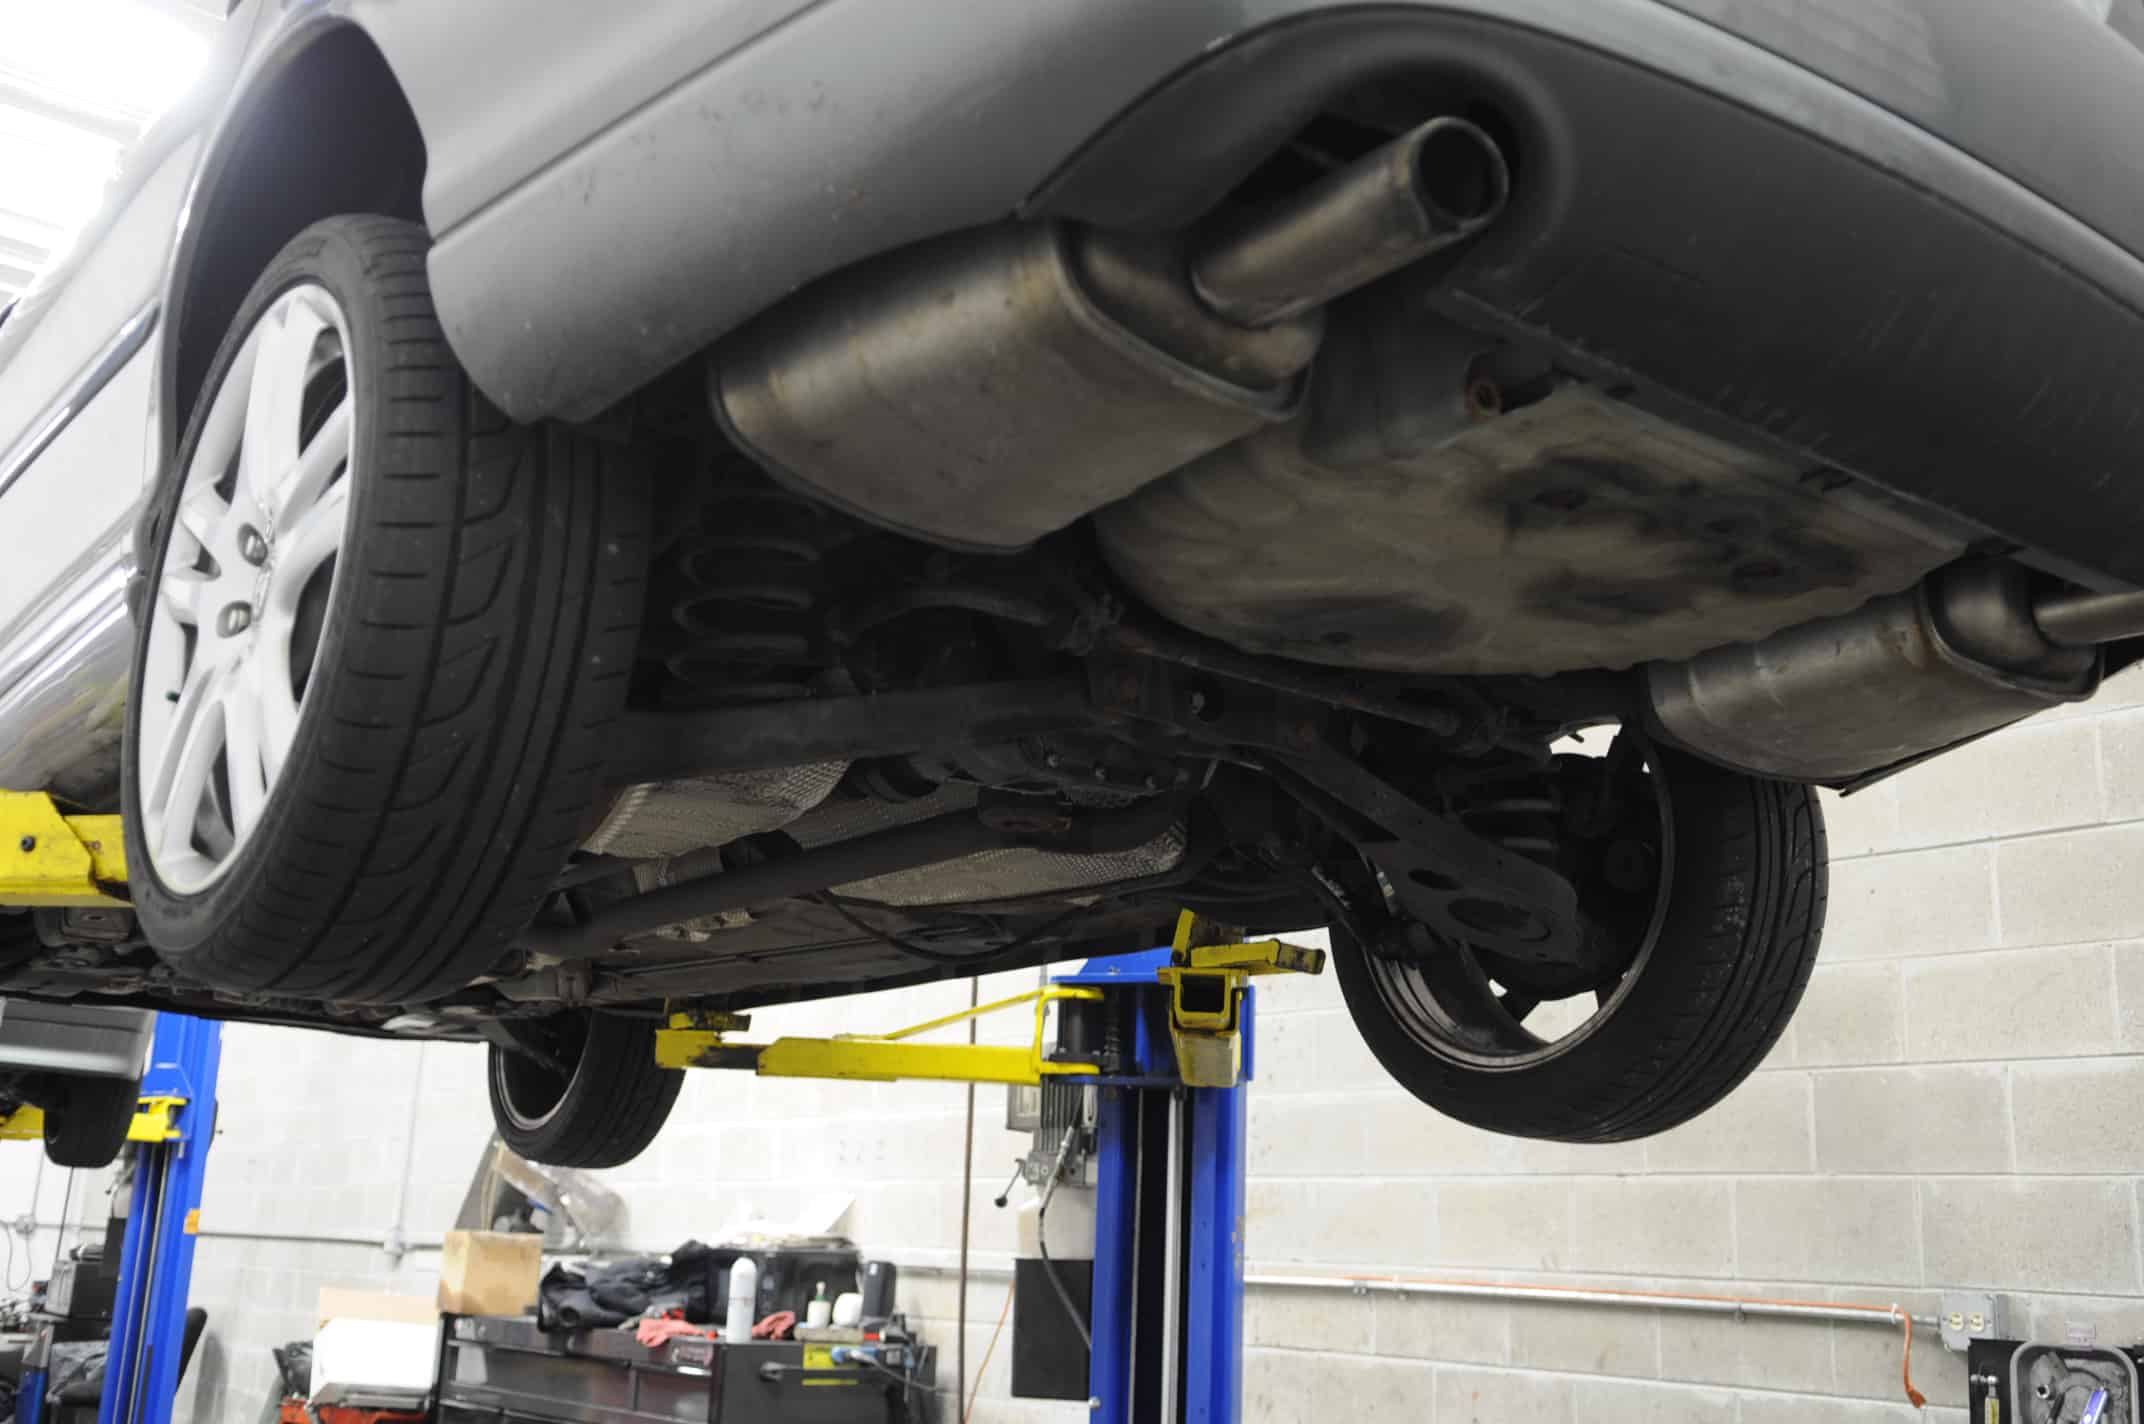 Jaguar Rear Suspension Noise - Car Repair, & Performance